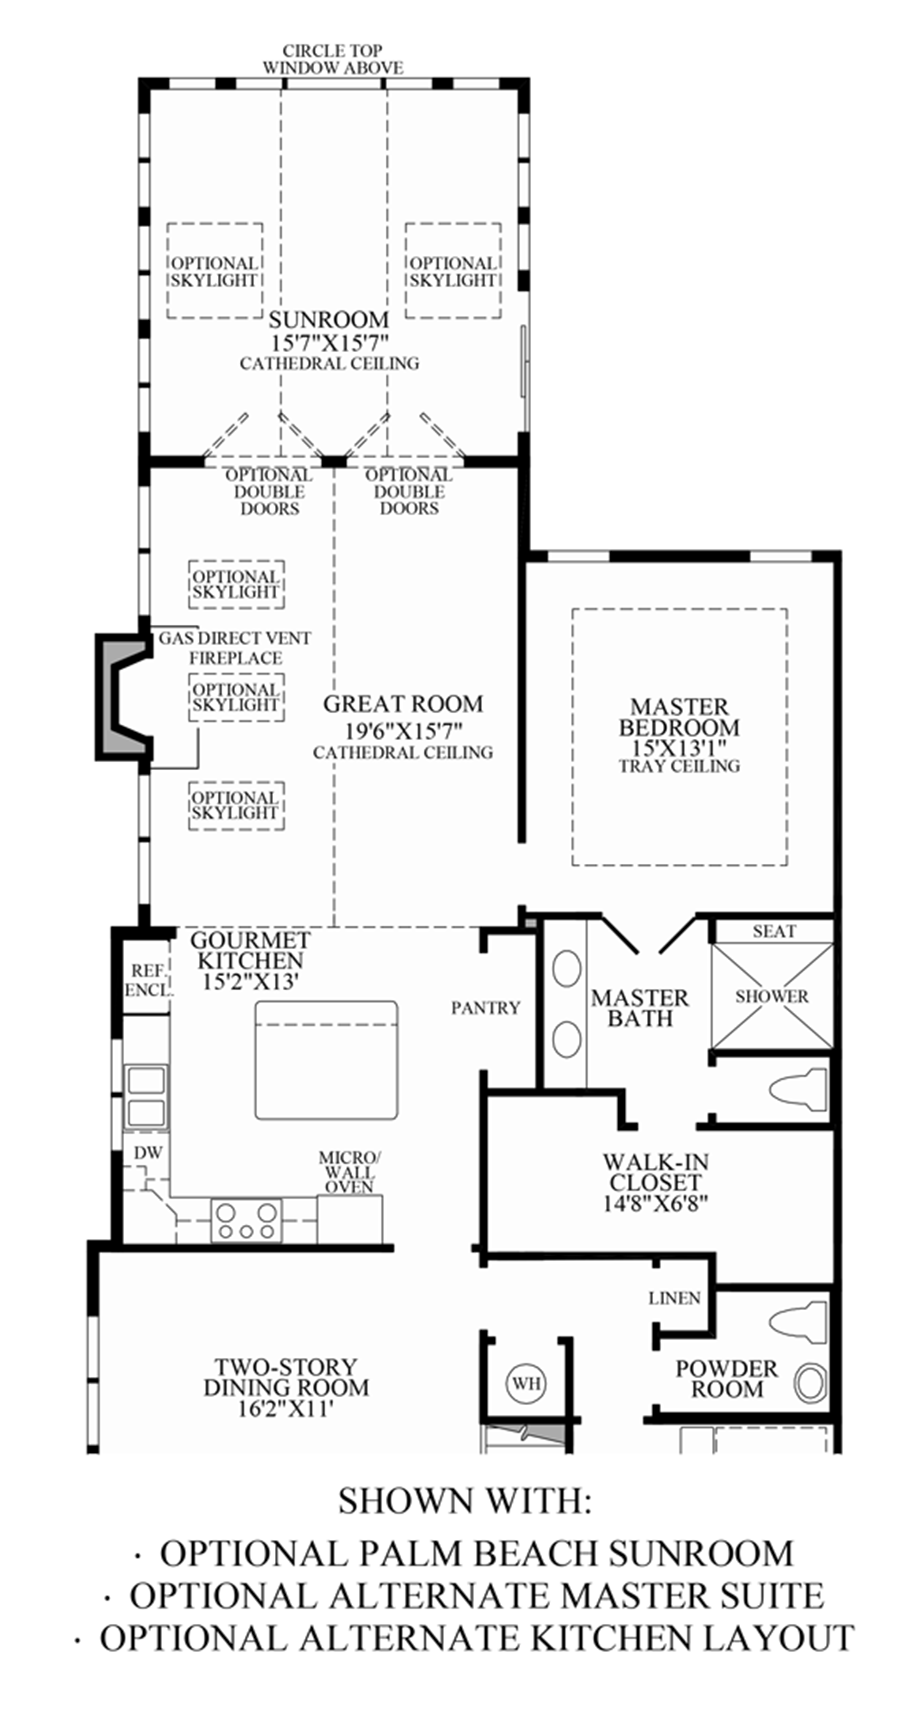 Optional Palm Beach Sunroom/Alternate Master Suite/Alternate Kitchen Layout Floor Plan